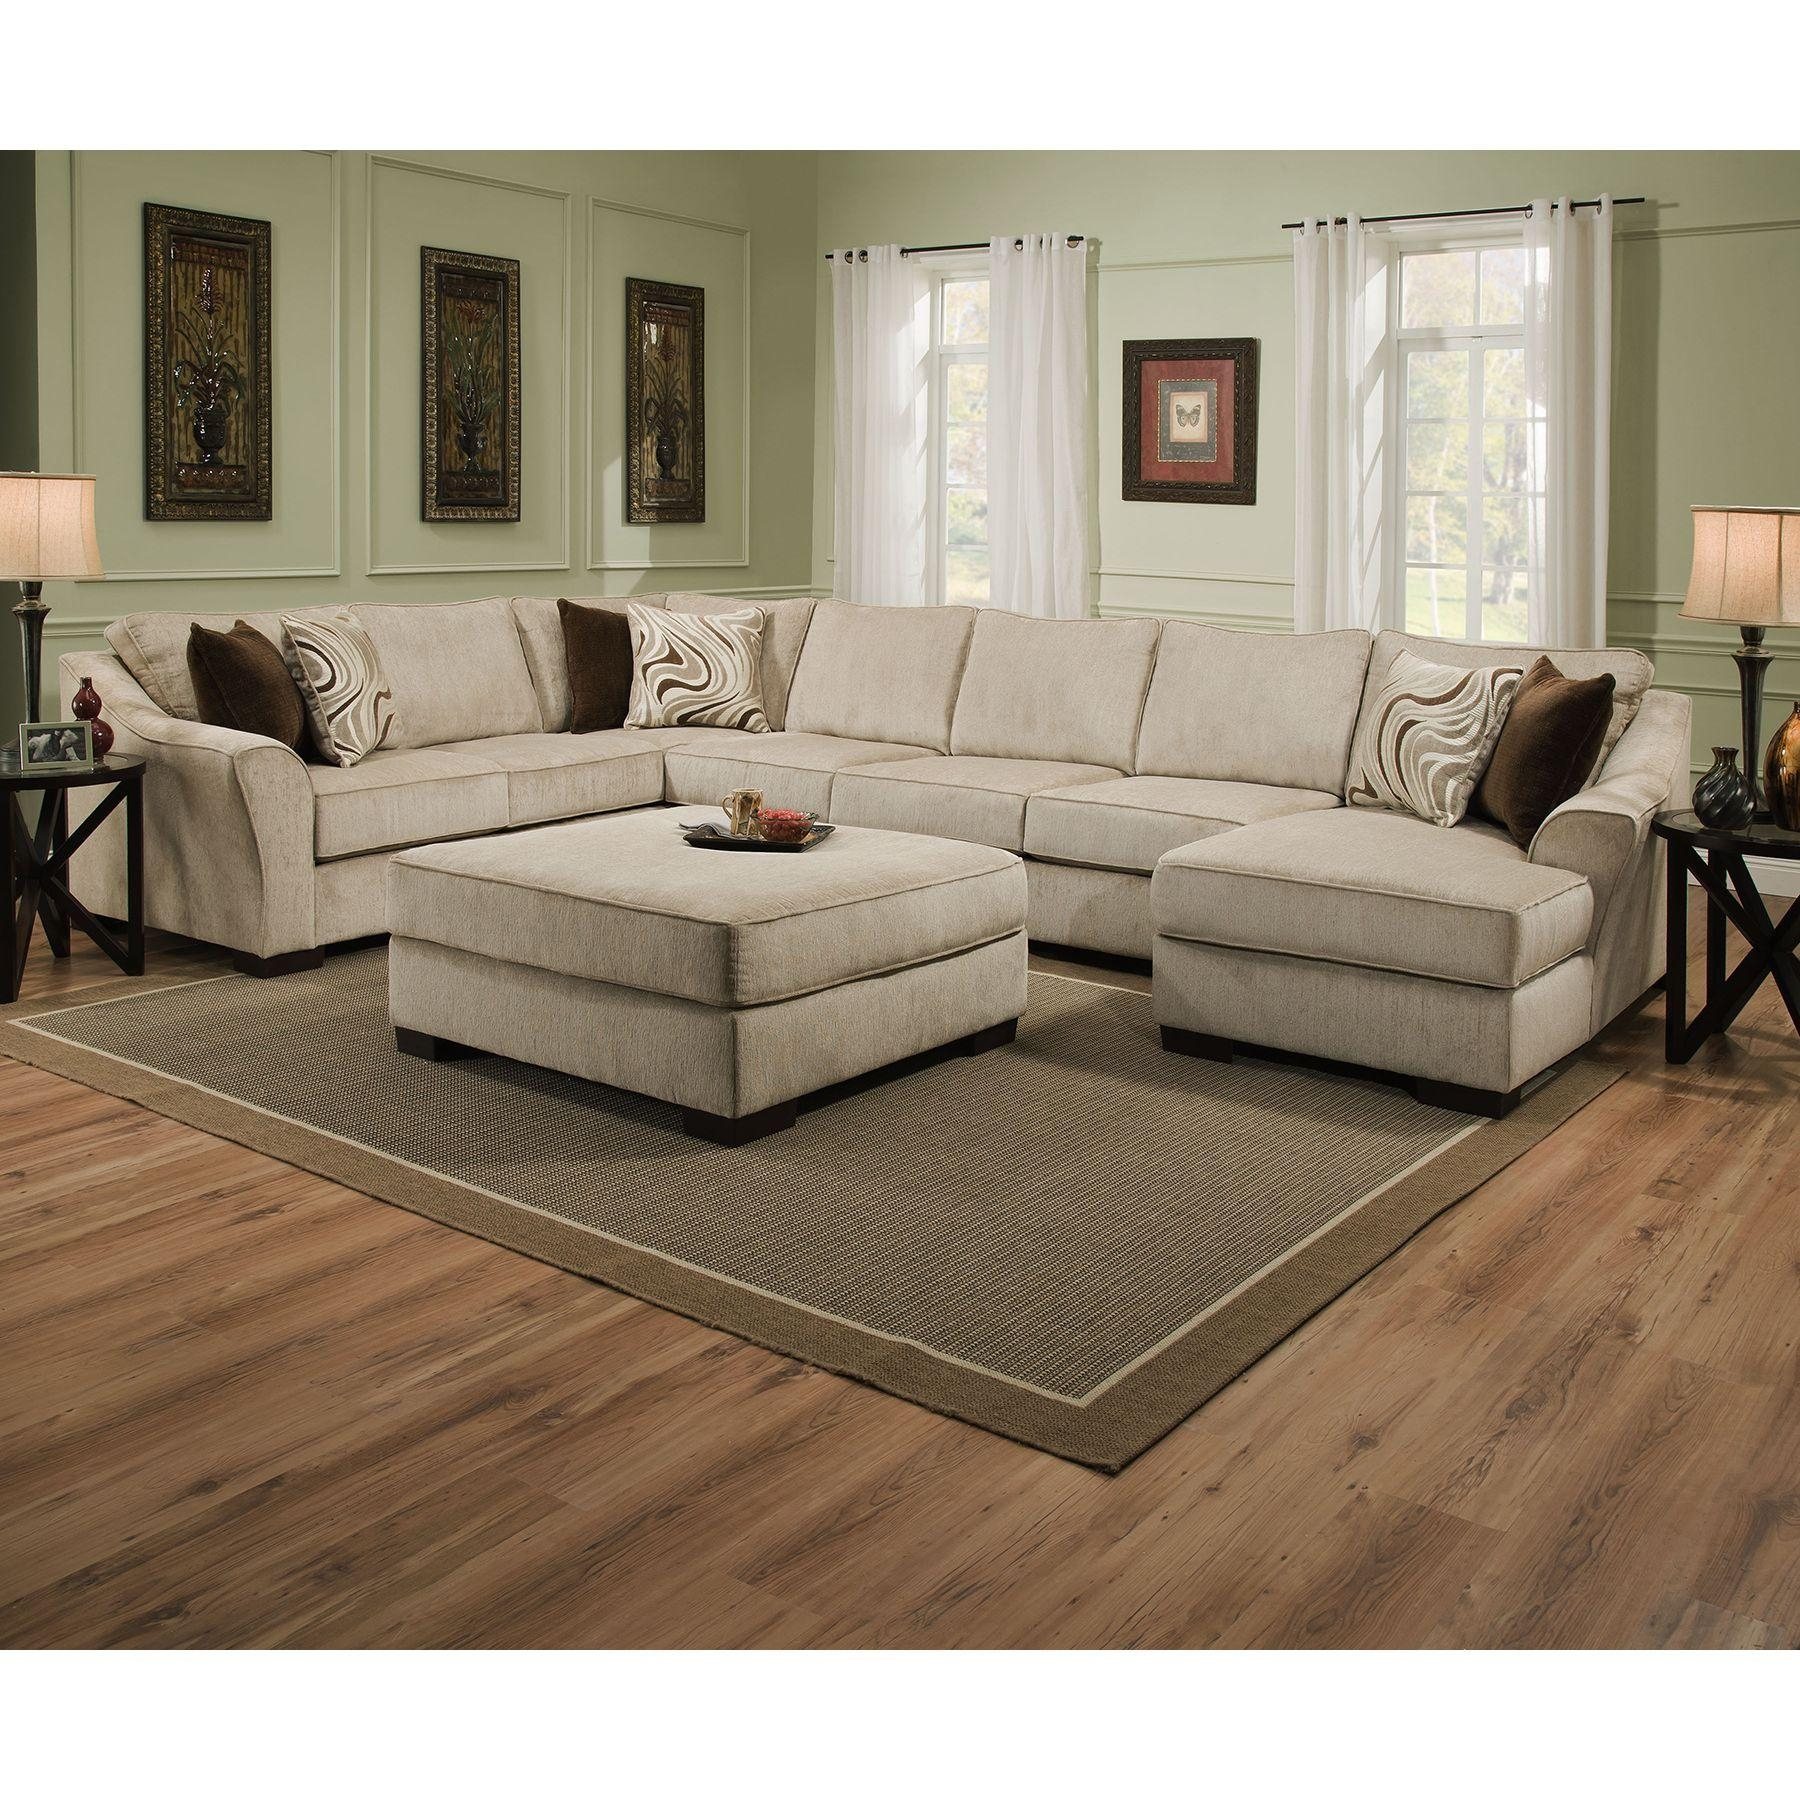 Sofas Center : Sectional Sofa With Large Ottoman Cleanupflorida Intended For Sectional With Large Ottoman (Image 16 of 20)